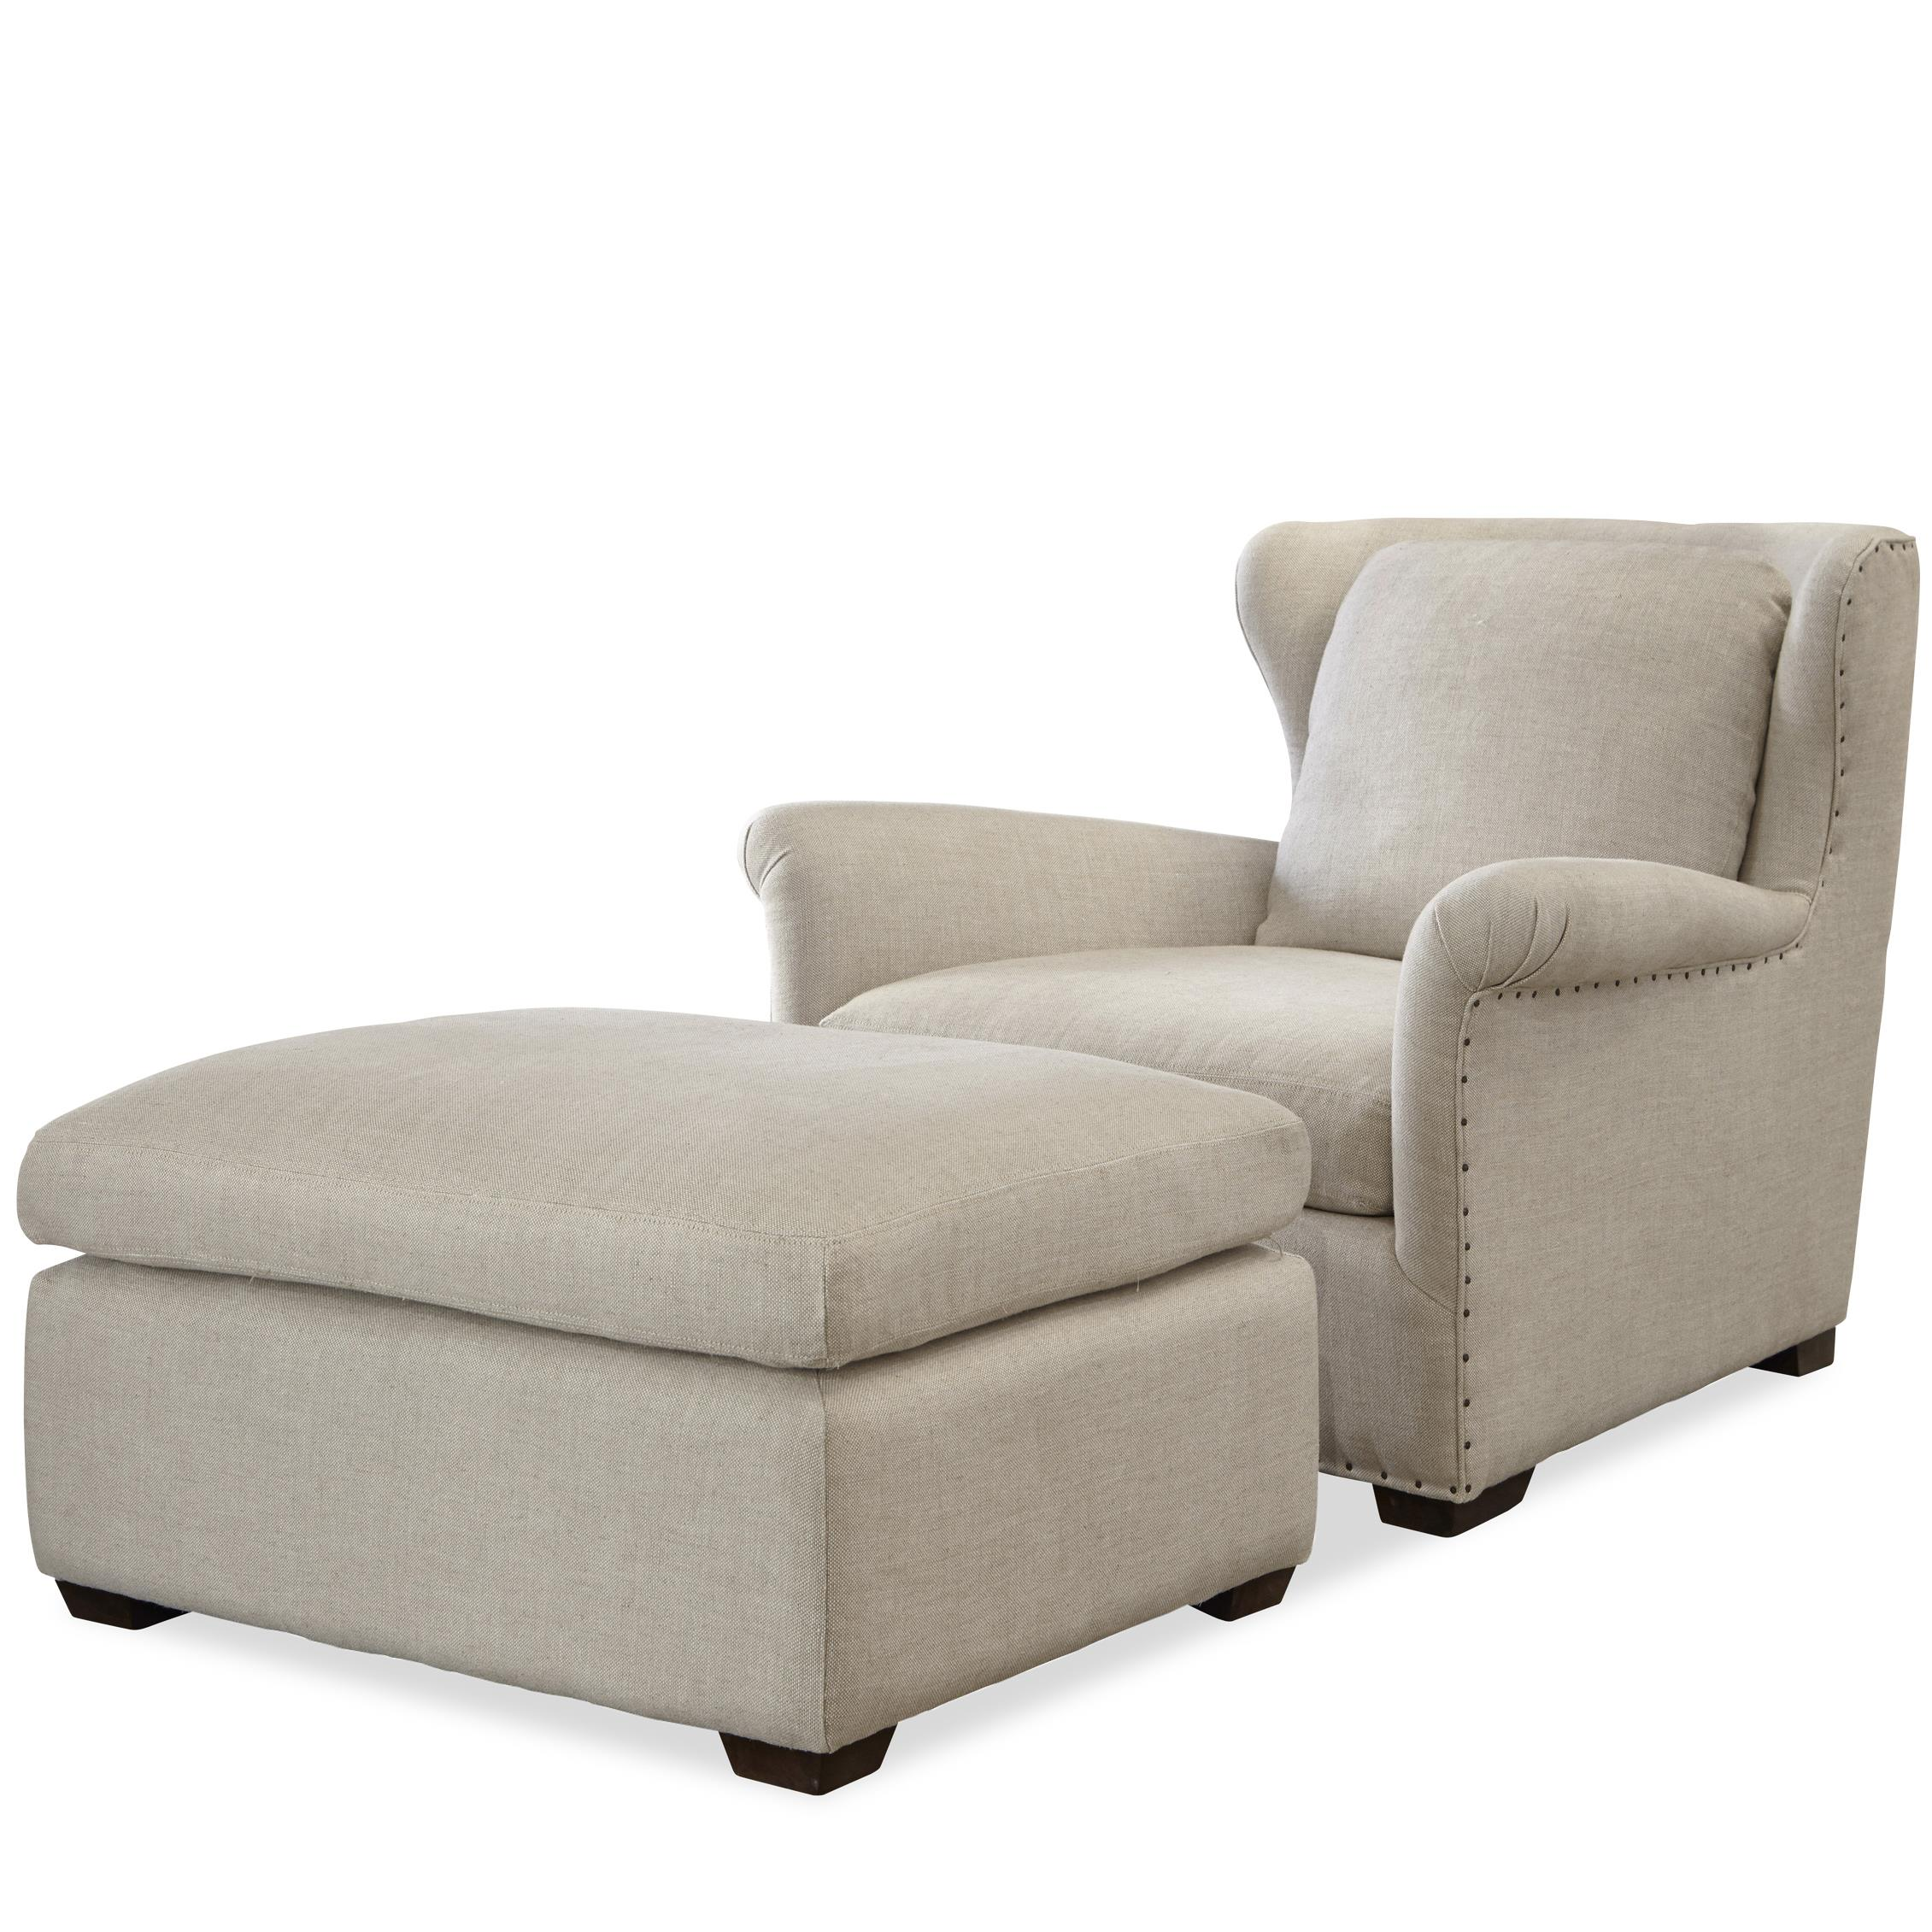 Chair And Ottoman Universal Haven Transitional Chair And Ottoman Set With